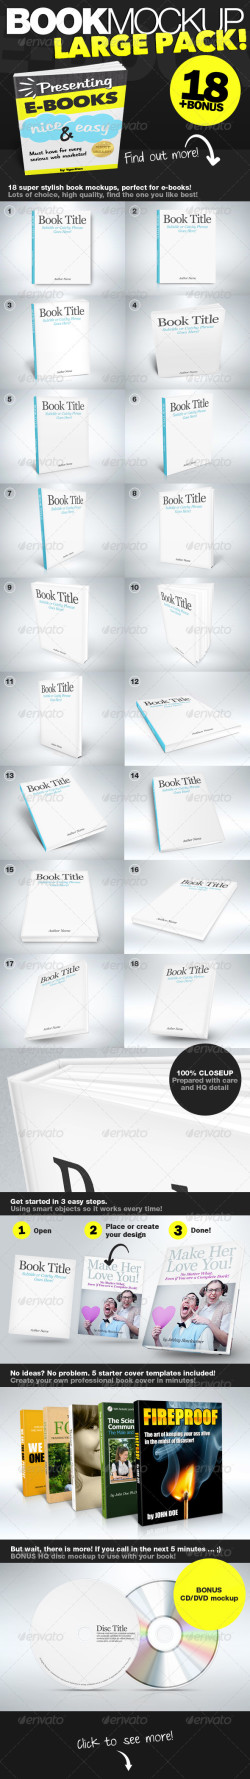 PREVIEW_Book_Mockup_LargePack